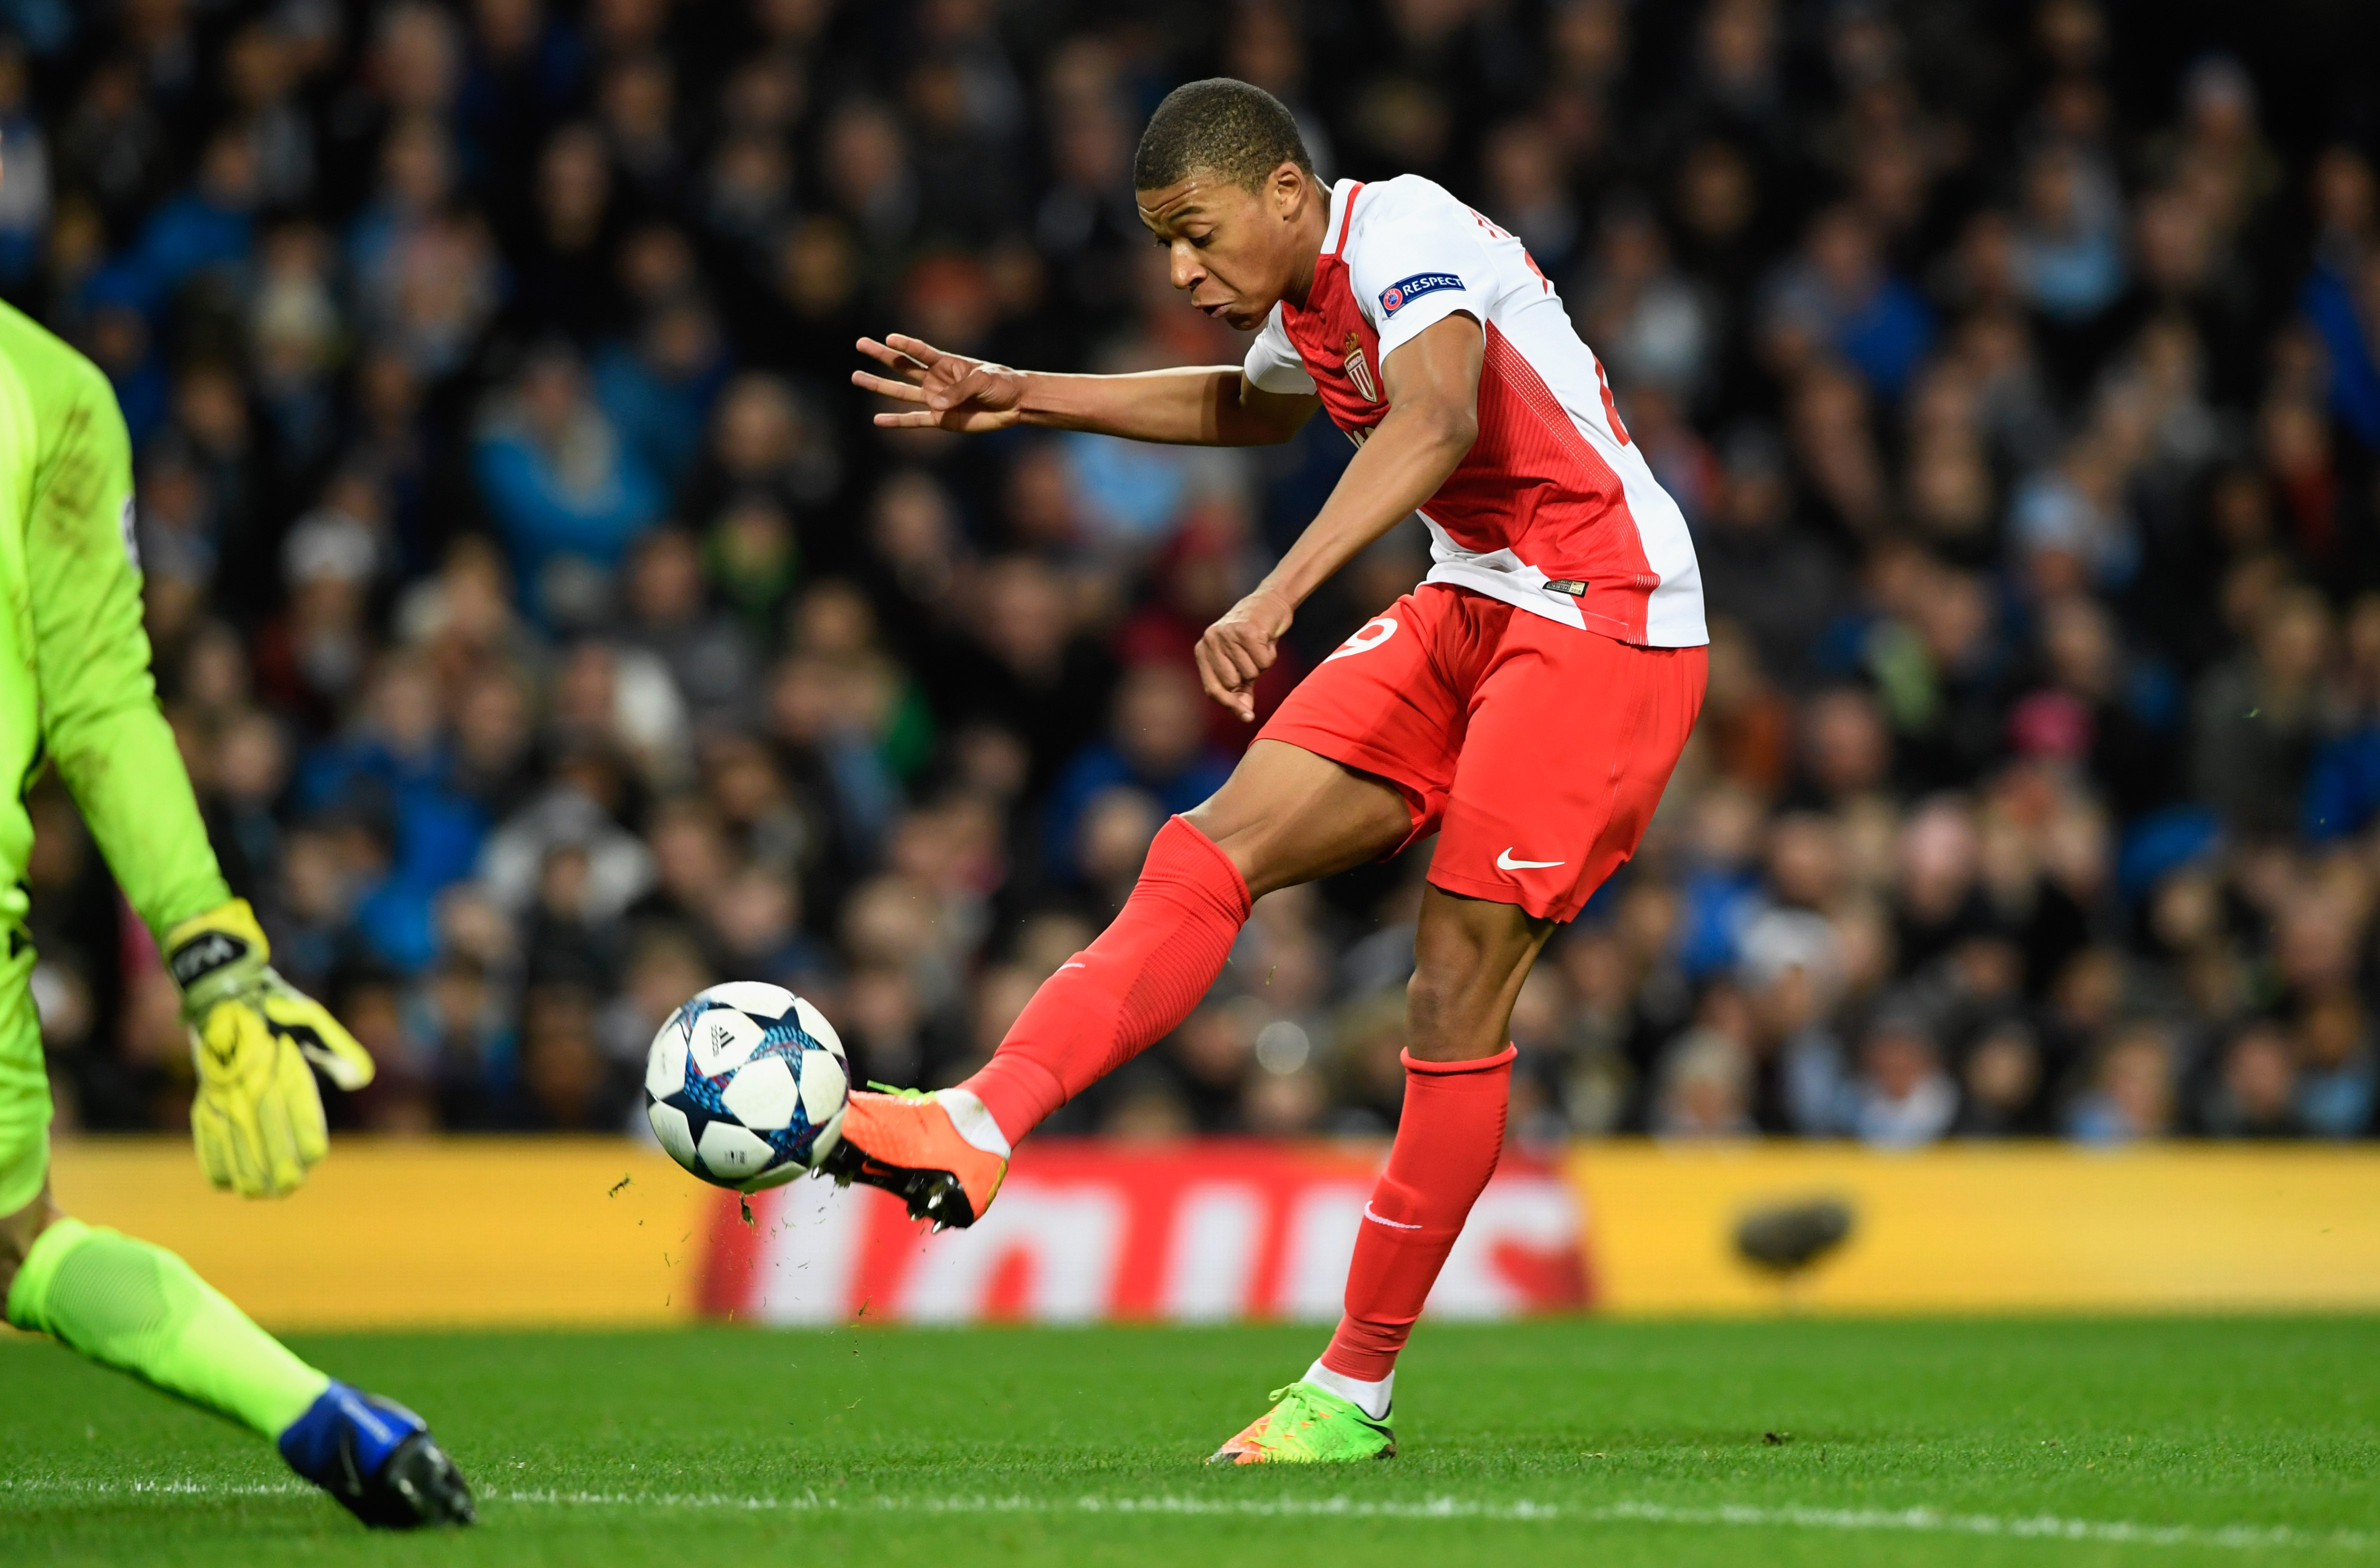 MANCHESTER, ENGLAND - FEBRUARY 21: Kylian Mbappe of AS Monaco scores their second goal during the UEFA Champions League Round of 16 first leg match between Manchester City FC and AS Monaco at Etihad Stadium on February 21, 2017 in Manchester, United Kingdom. (Photo by Stu Forster/Getty Images)